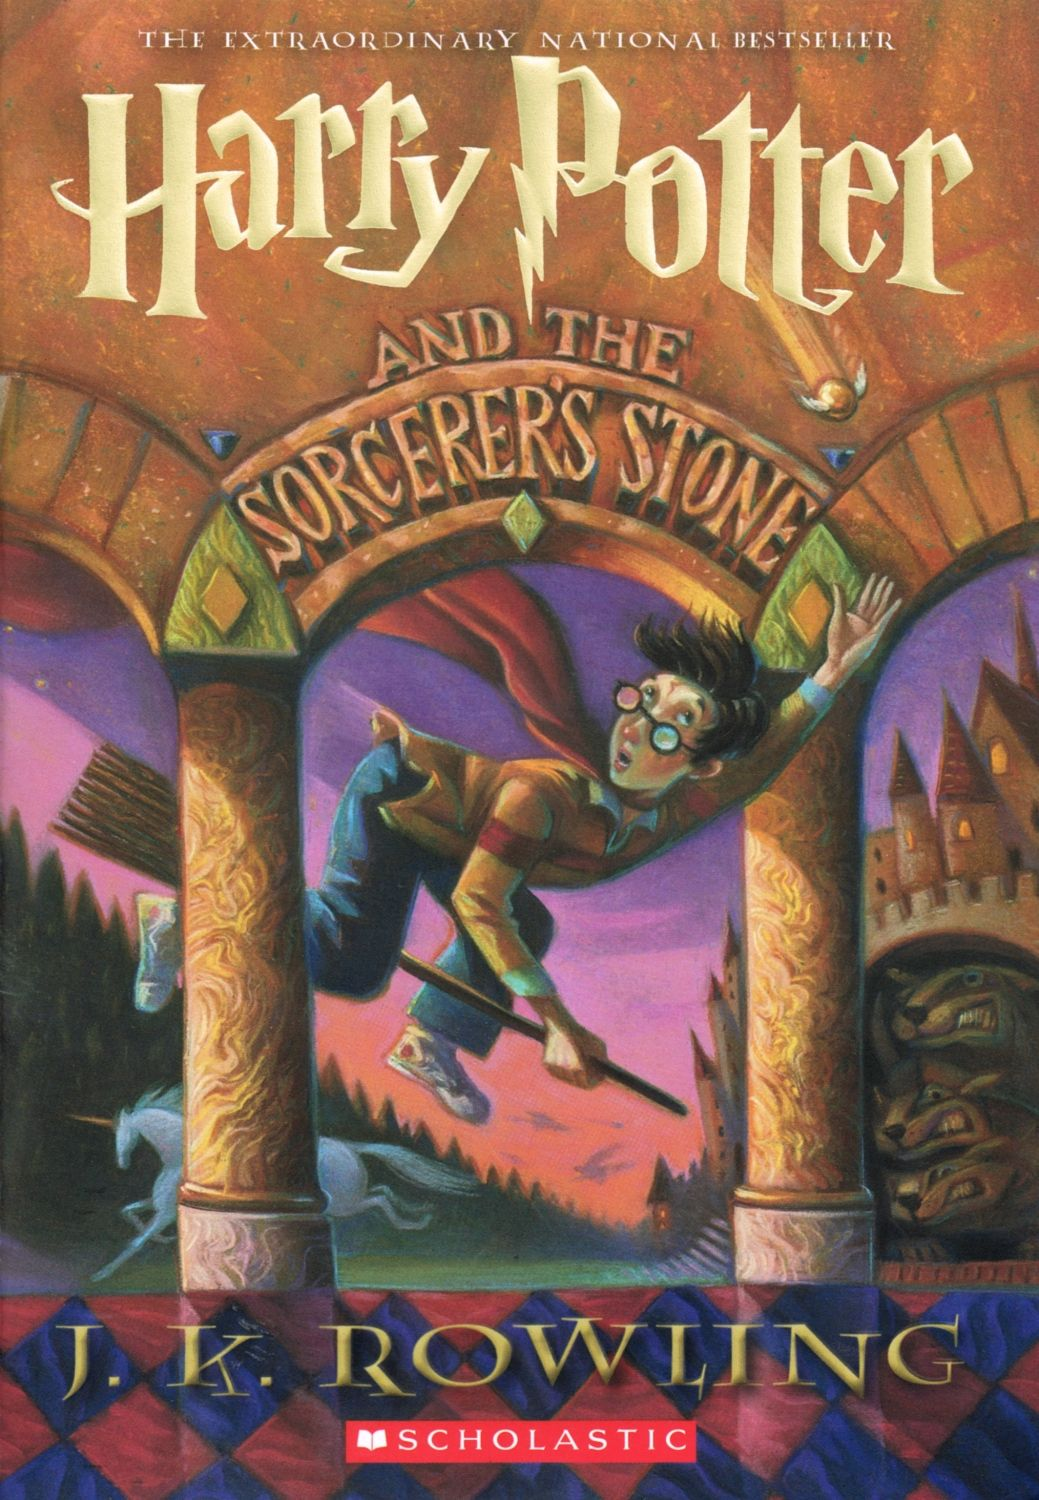 Roman Harry Potter and the Philosopher's Stone turned 20 years old 06/26/2017 38